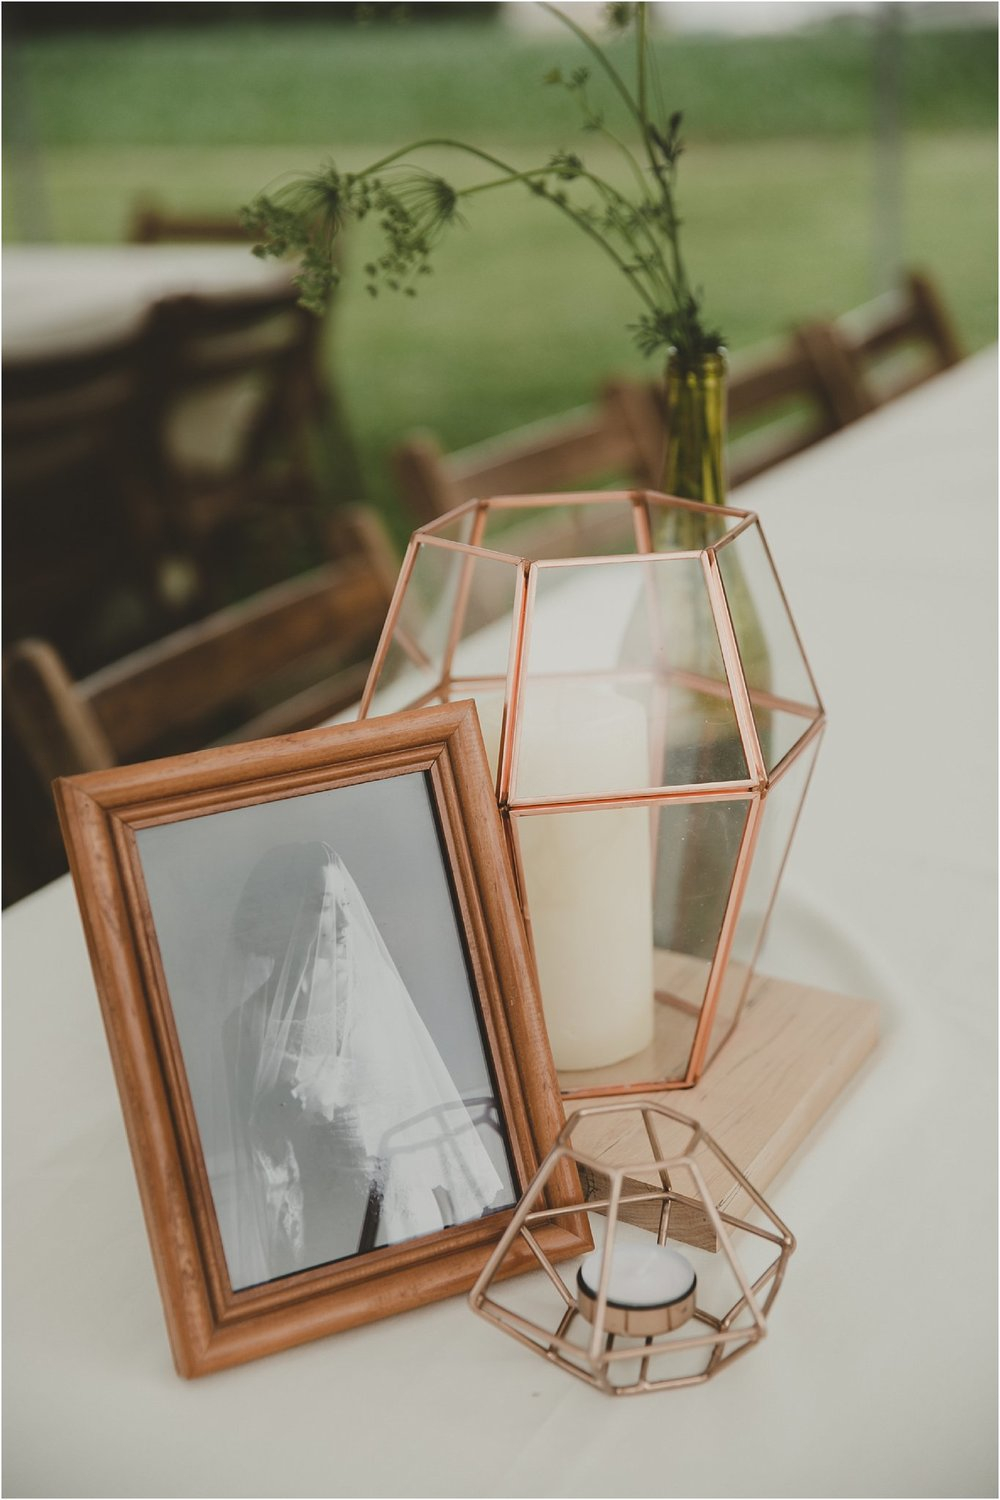 PattengalePhotography_Indiana_Backyard_Wedding_Reception_Boho_VintageCar_Hudson_classic_elegant_smalltown_intimate_Stephen&Me_0004.jpg